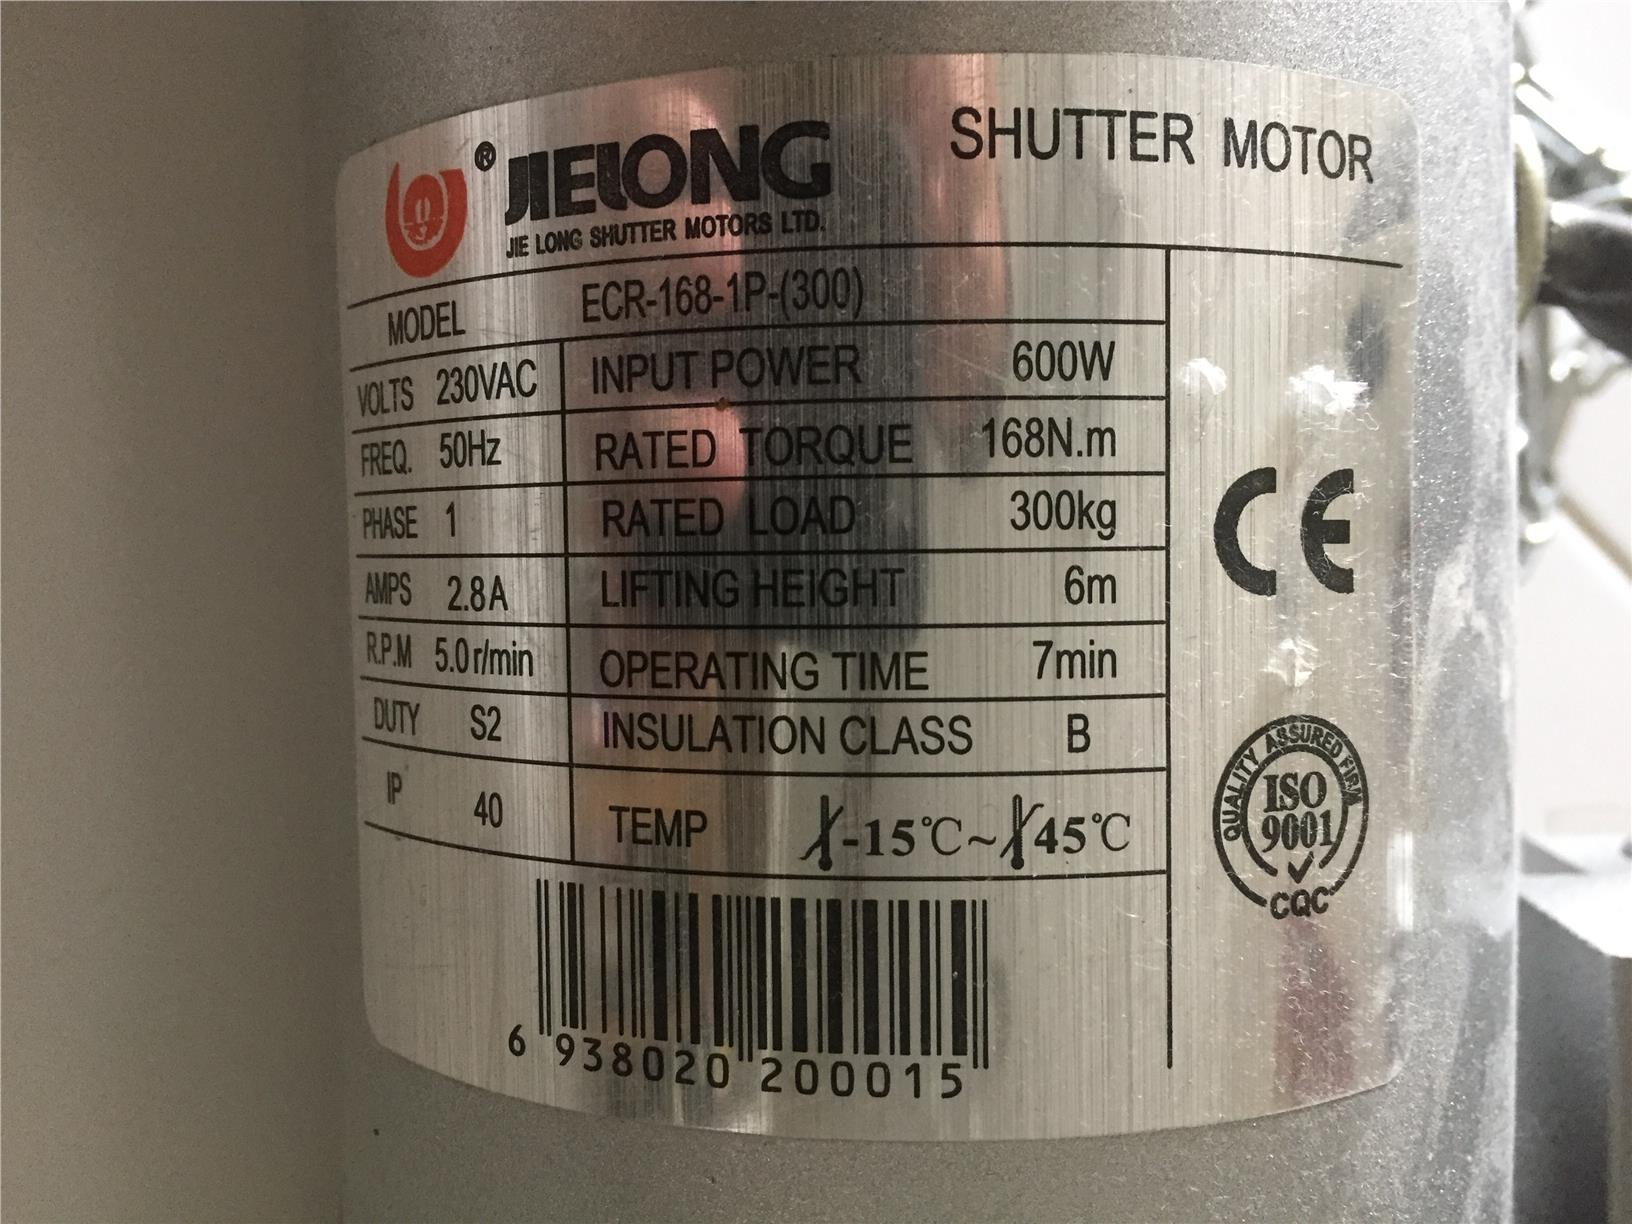 Roller Shutter Motor Max Load 300KGs in good condition